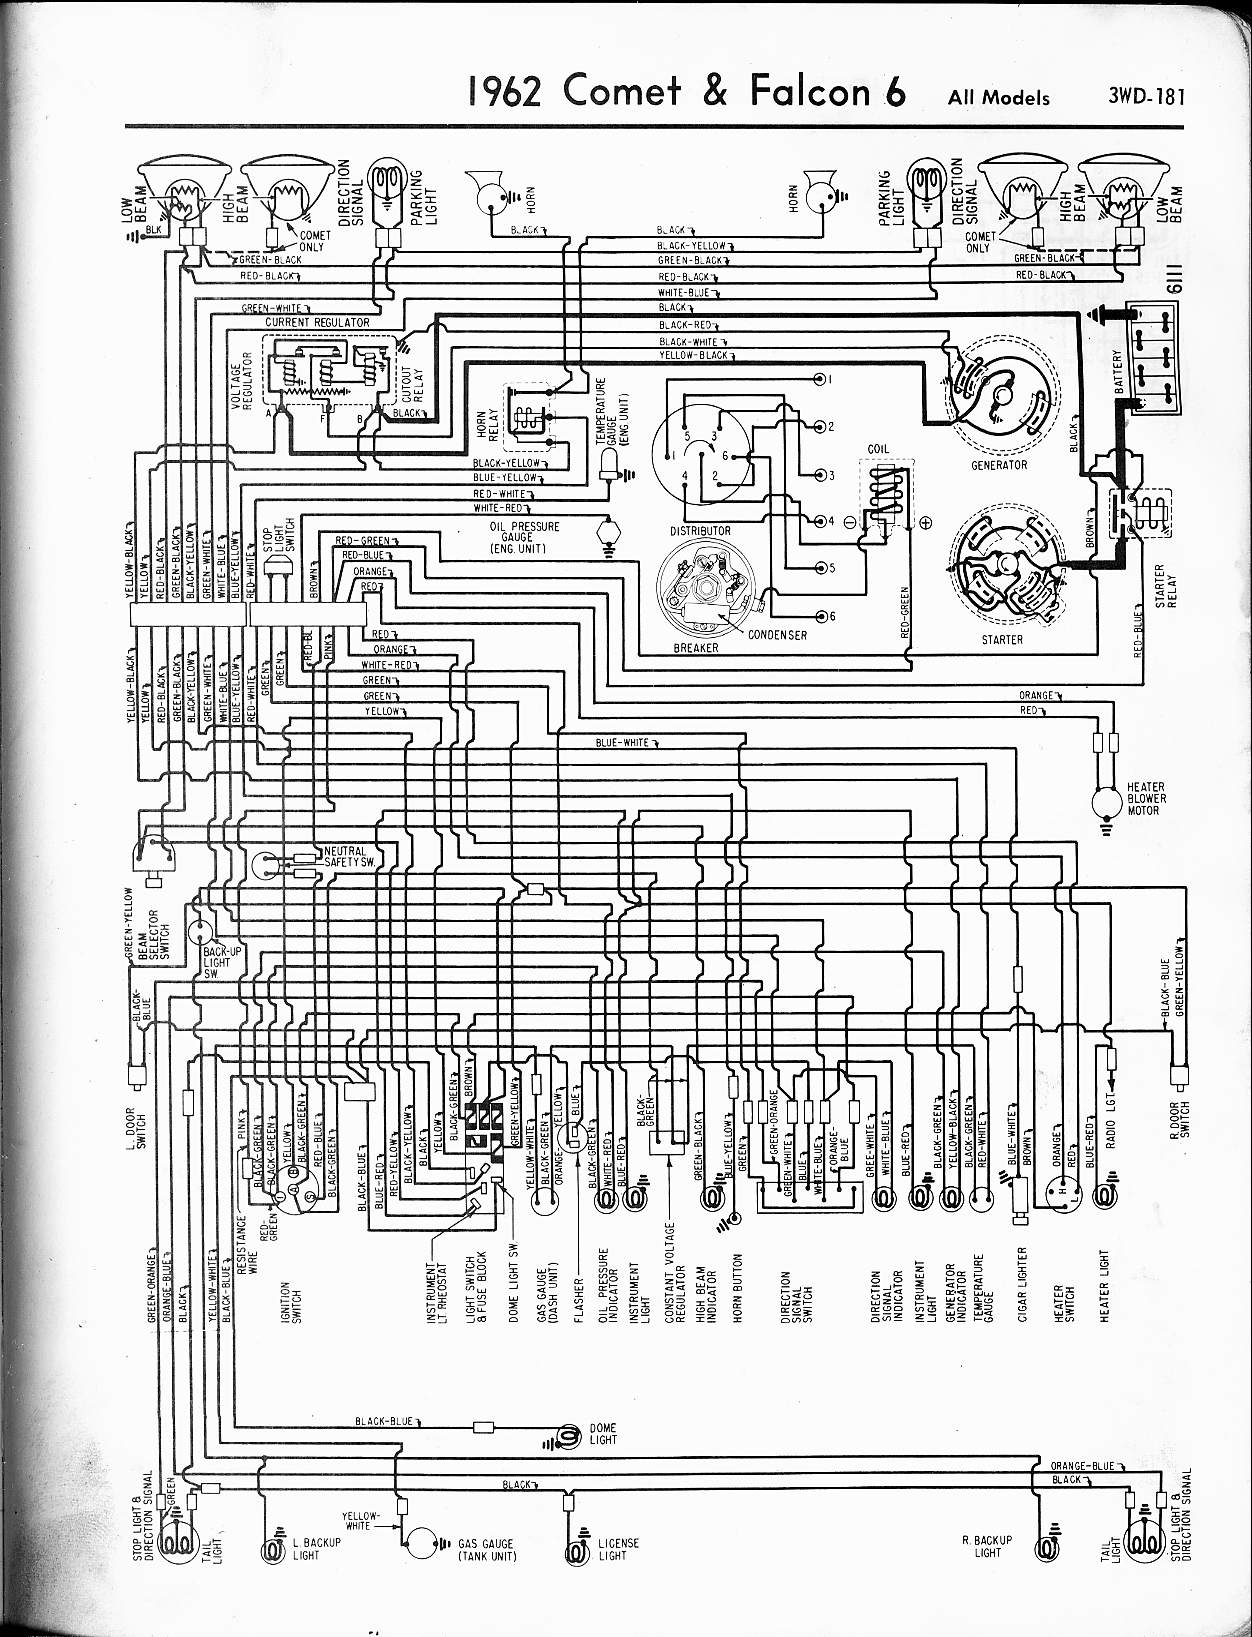 1962 Thunderbird Wiring Diagram | Wiring Diagram on 1963 falcon speedometer, 1963 falcon exhaust, 1963 falcon brakes, 1963 falcon wheels, 1963 falcon transmission, 1963 falcon battery, 1963 falcon frame, 1963 falcon steering, 1963 falcon ignition coil, 1963 falcon seats, 1963 falcon cylinder head, 1963 falcon suspension, 1963 falcon radio, 1963 falcon distributor, 1963 falcon fuel pump, 1963 falcon brochure, 1963 falcon ford, 1963 falcon specifications, 1963 falcon engine, 1963 falcon radiator,